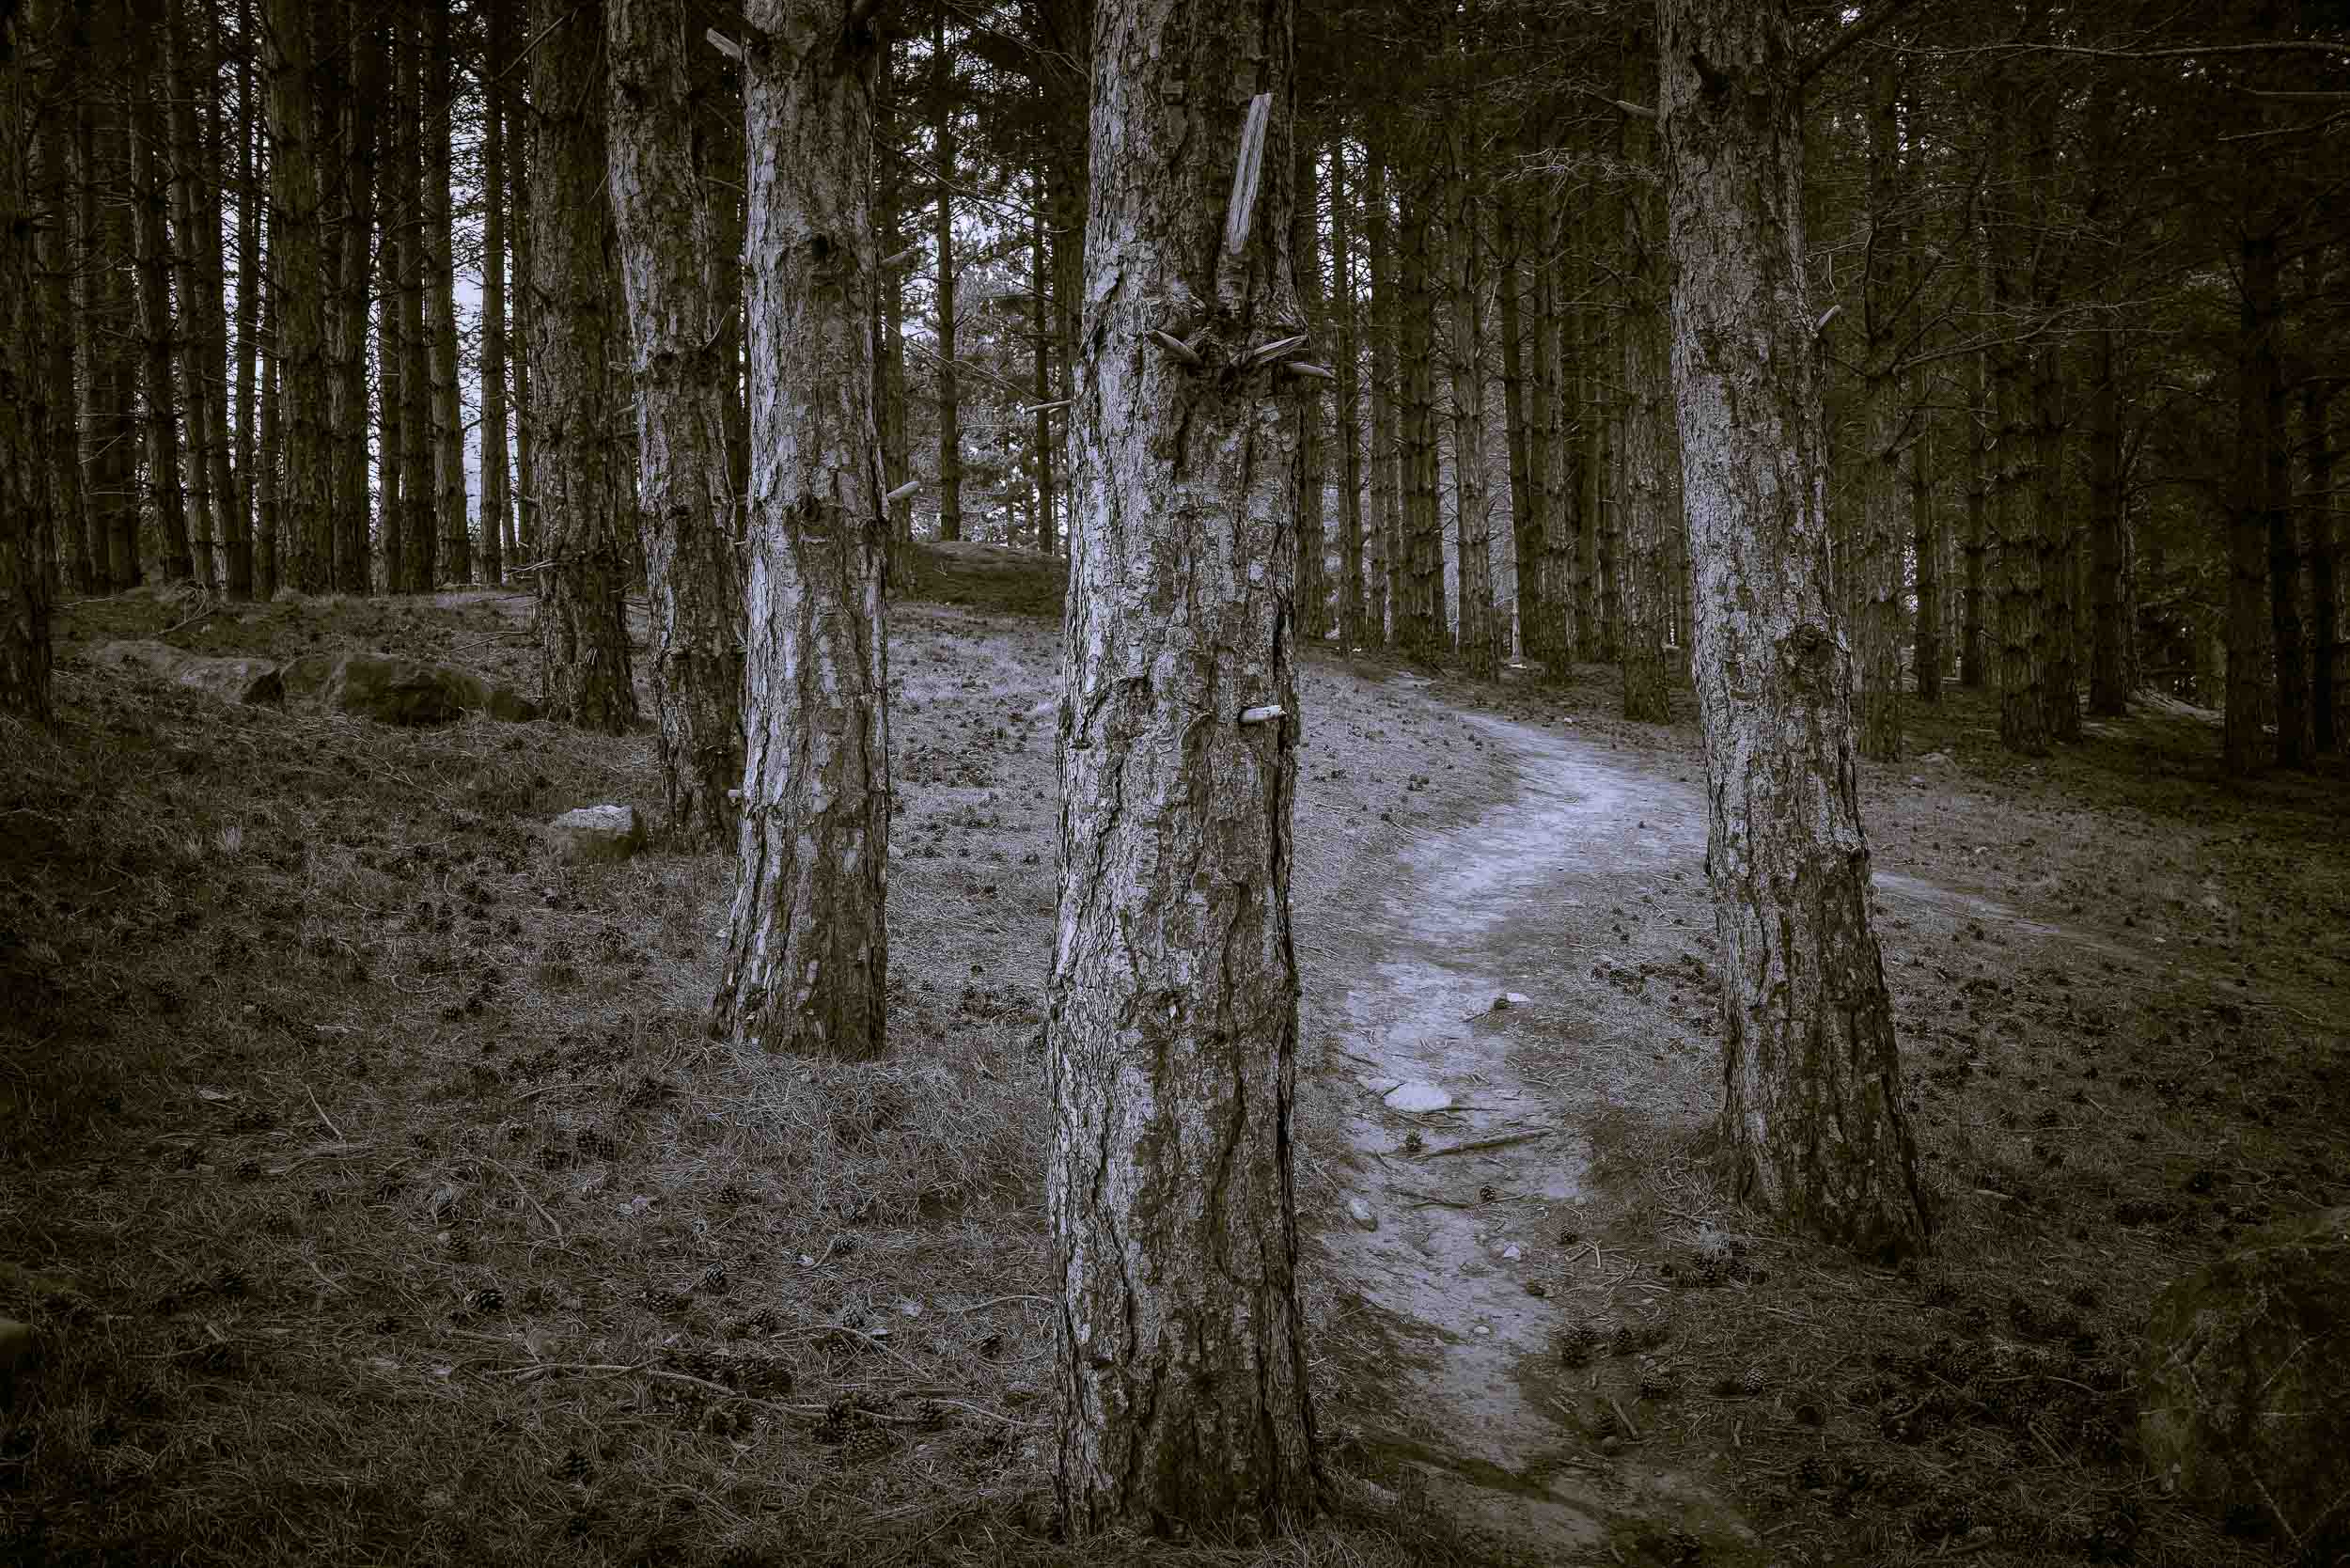 While photographing in this forested area near    Twizel    on the South Island of    New Zealand    I was reminded of '   Gollums Song'    from the    LOTR The Two Towers    movie.